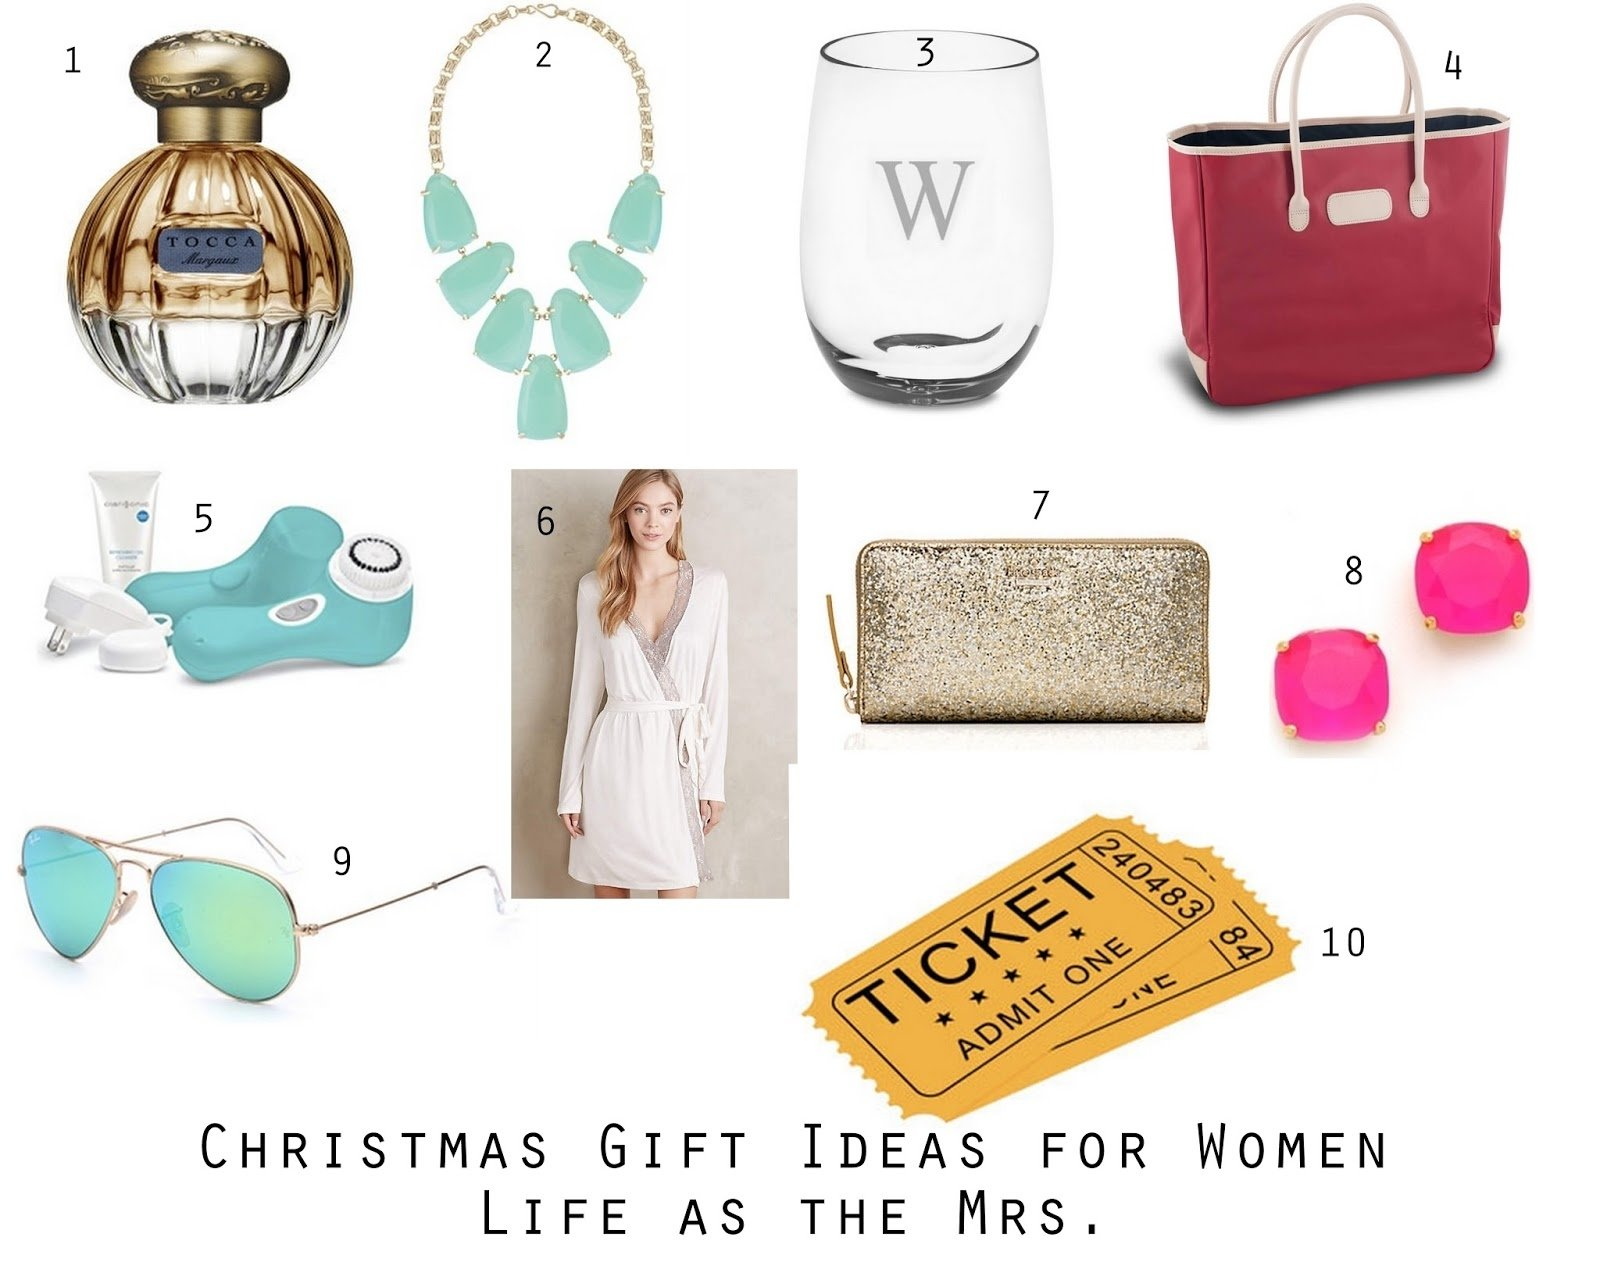 10 fabulous gift ideas mother in law life as the mrs thoughts for thursday christmas gift